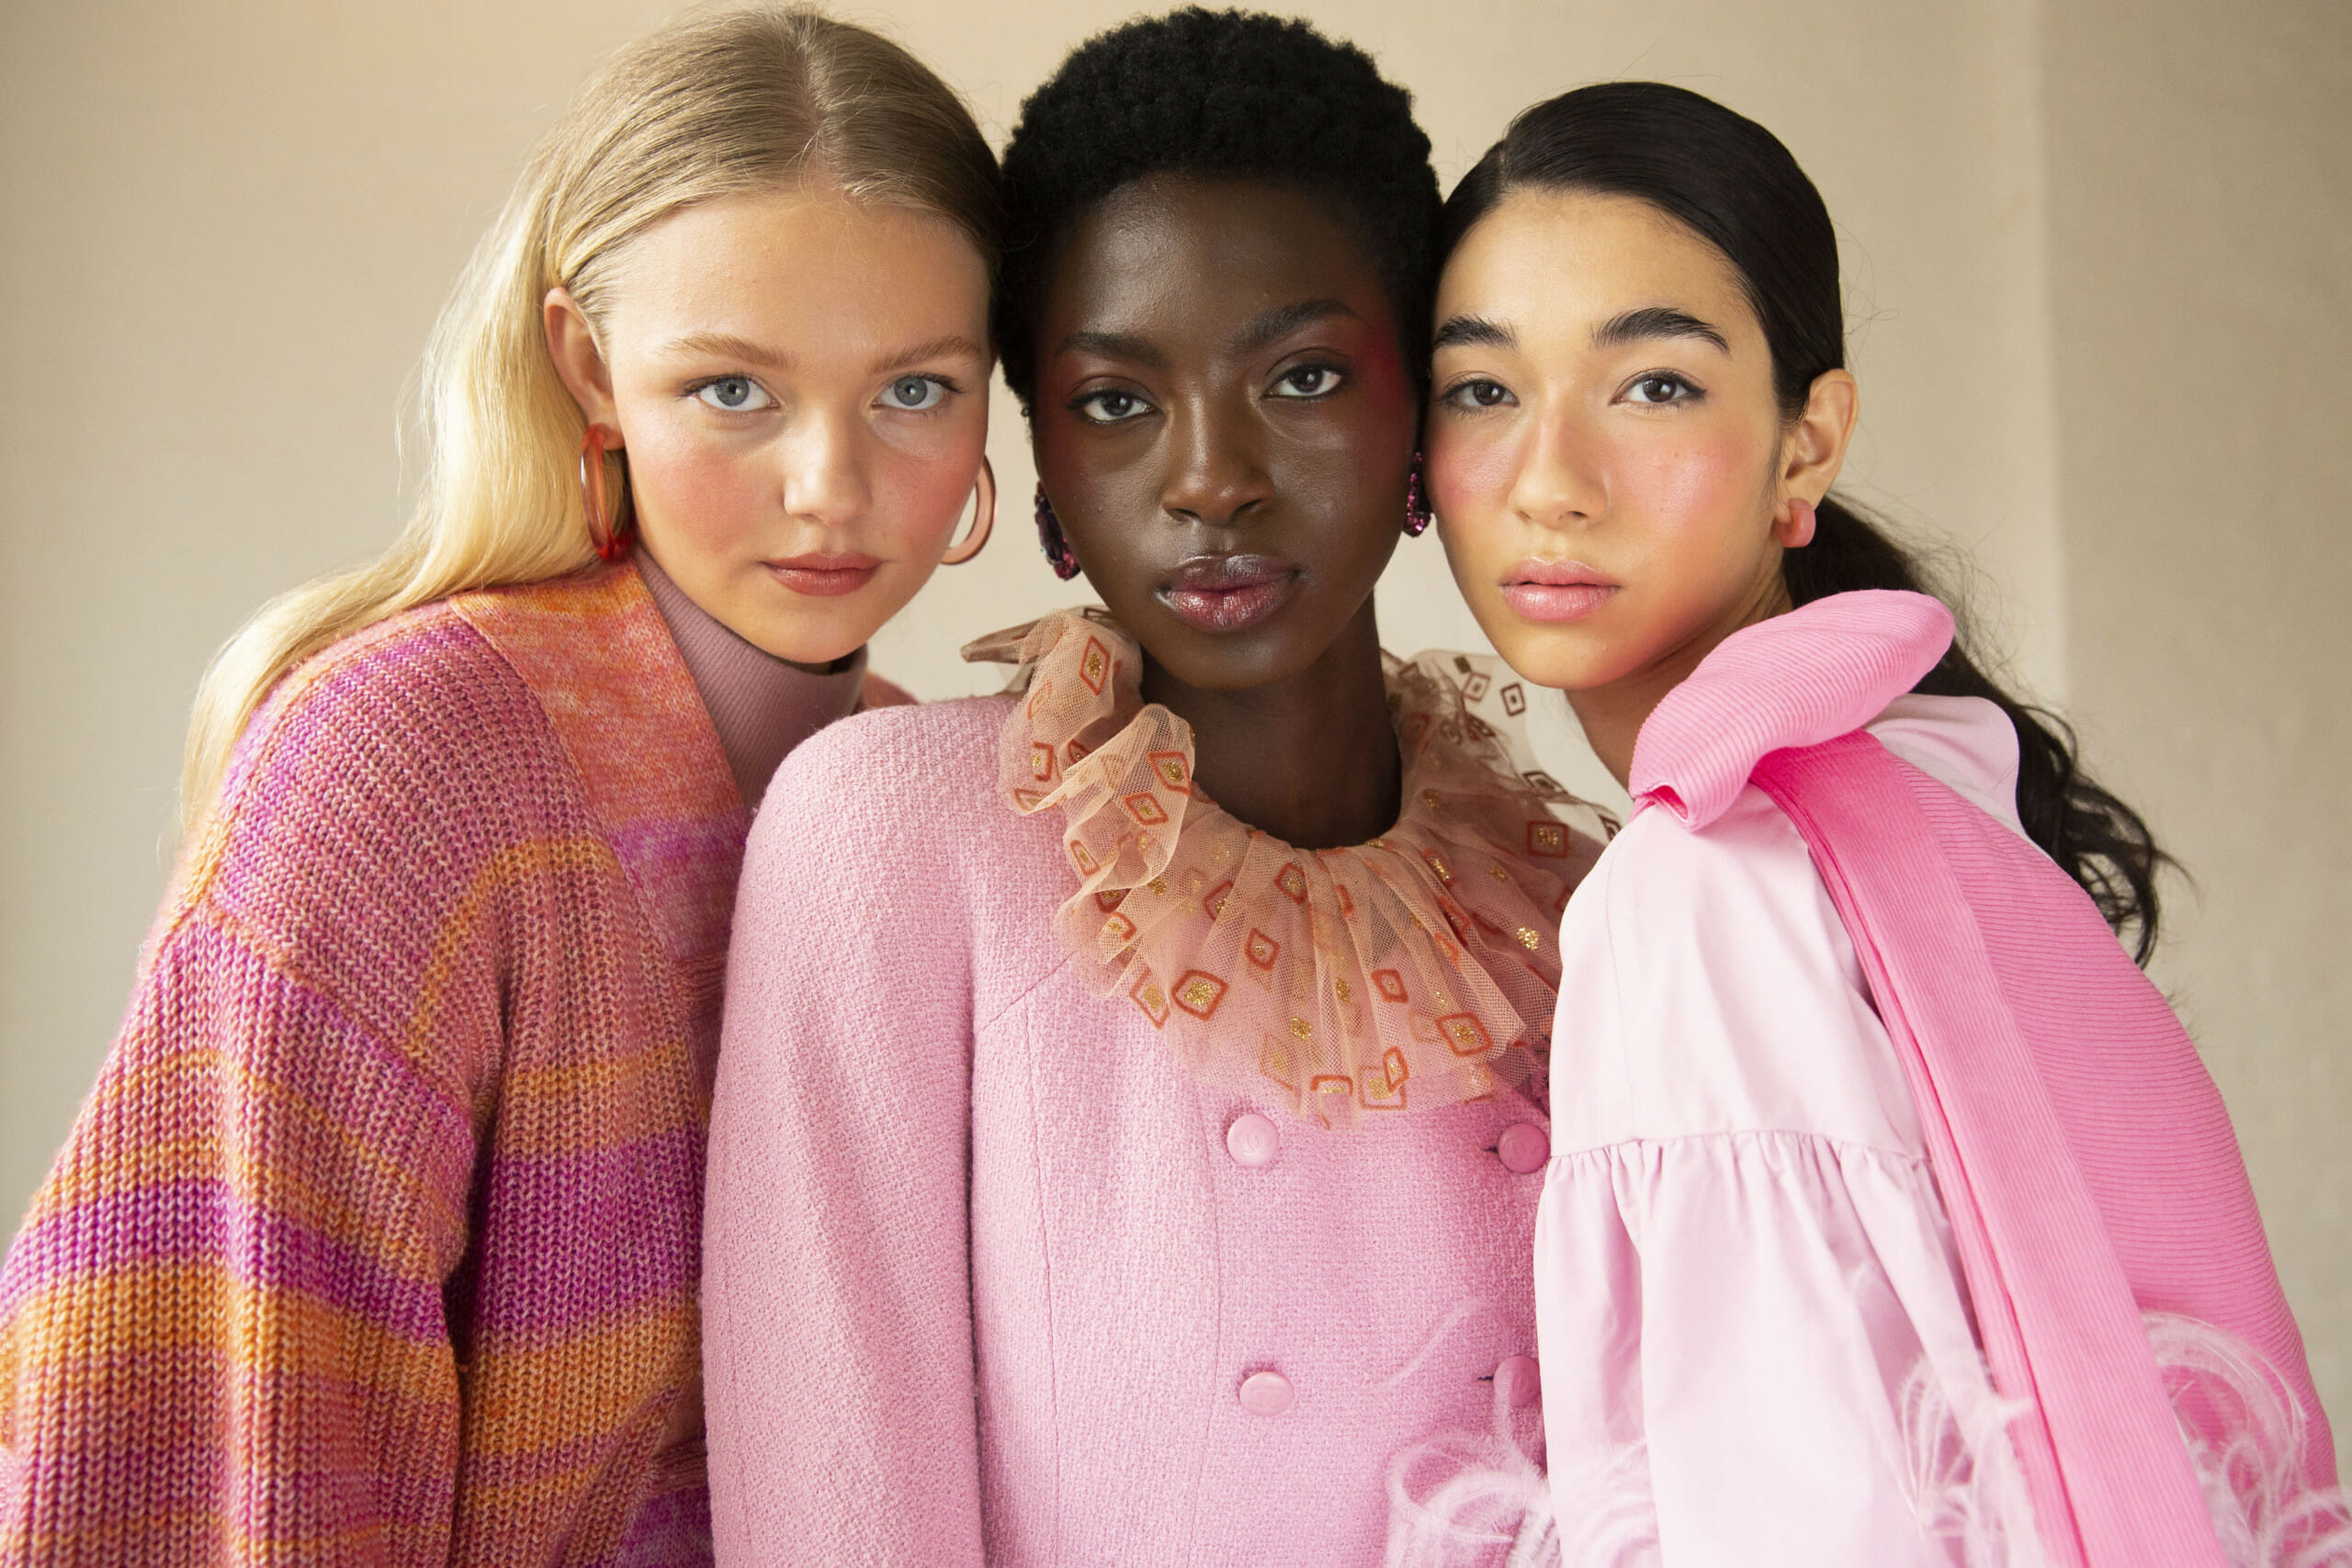 The Best Makeup Look Is Blush Just Blush Repeller